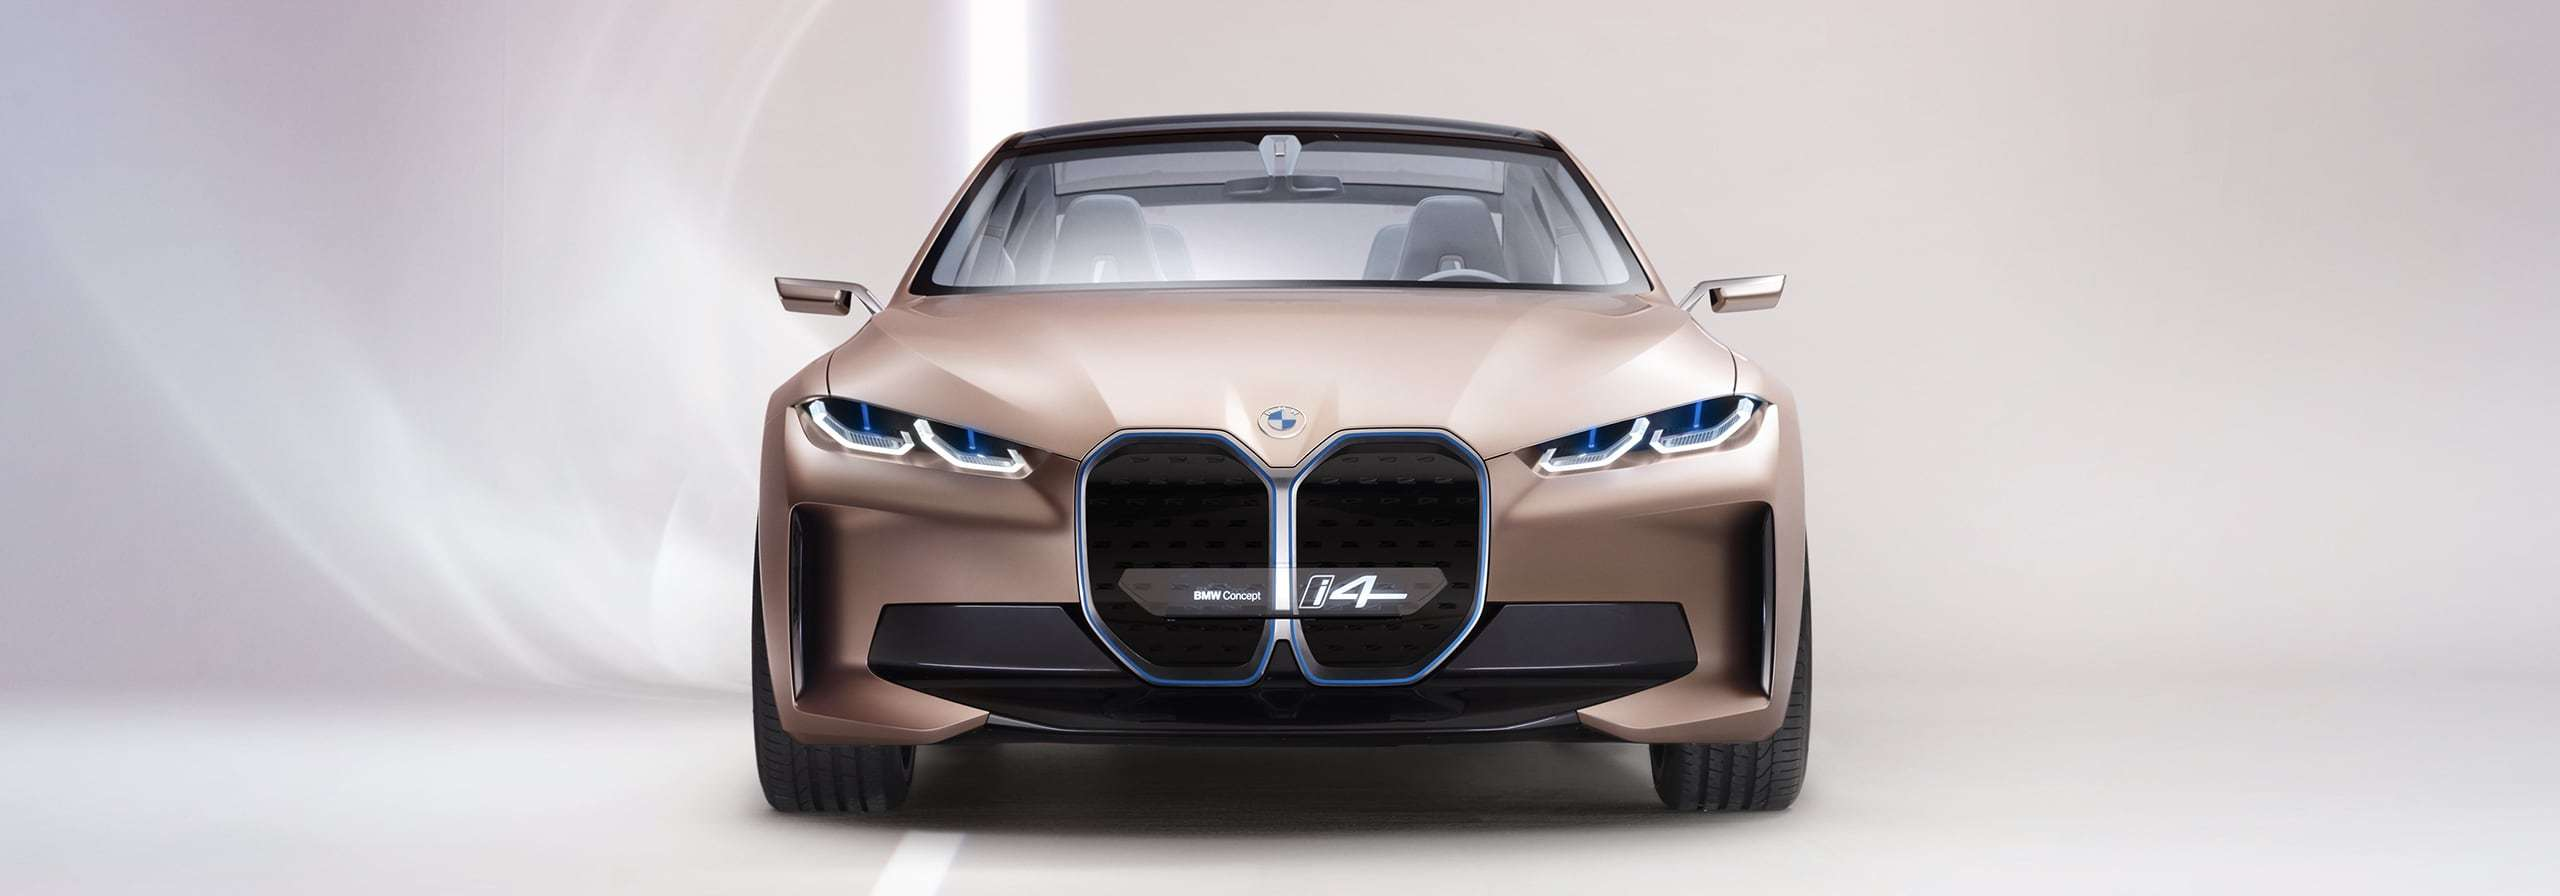 Front view of the BMW i4